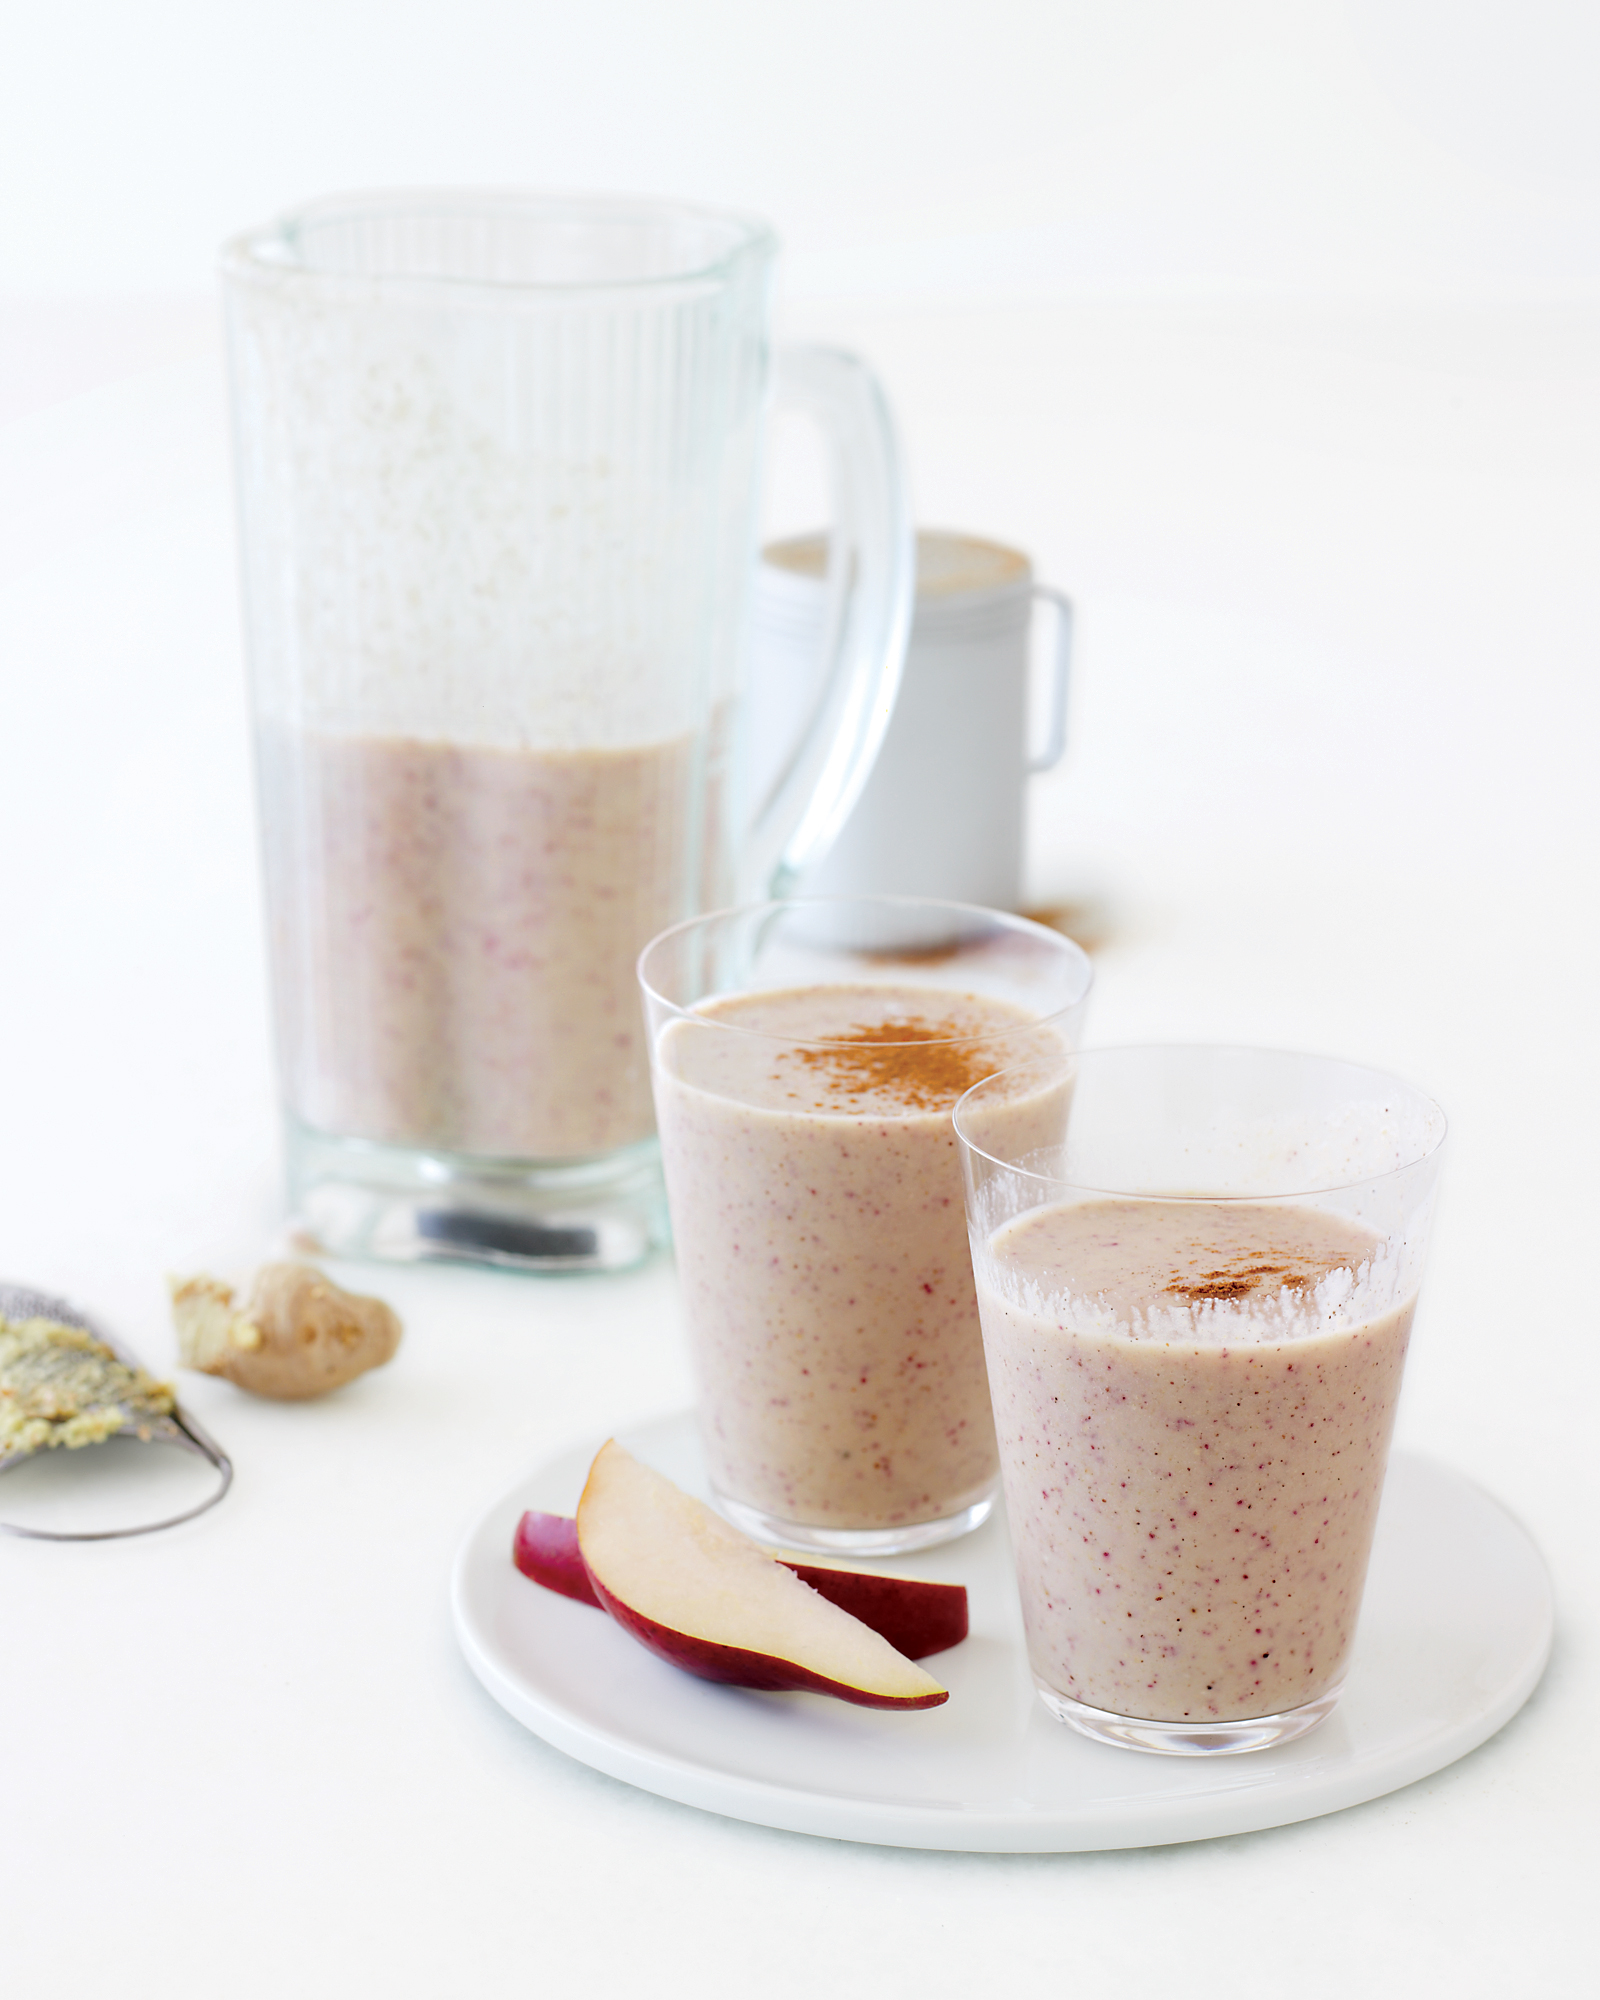 Pear Ginger Cinnamon Oatmeal Smoothie